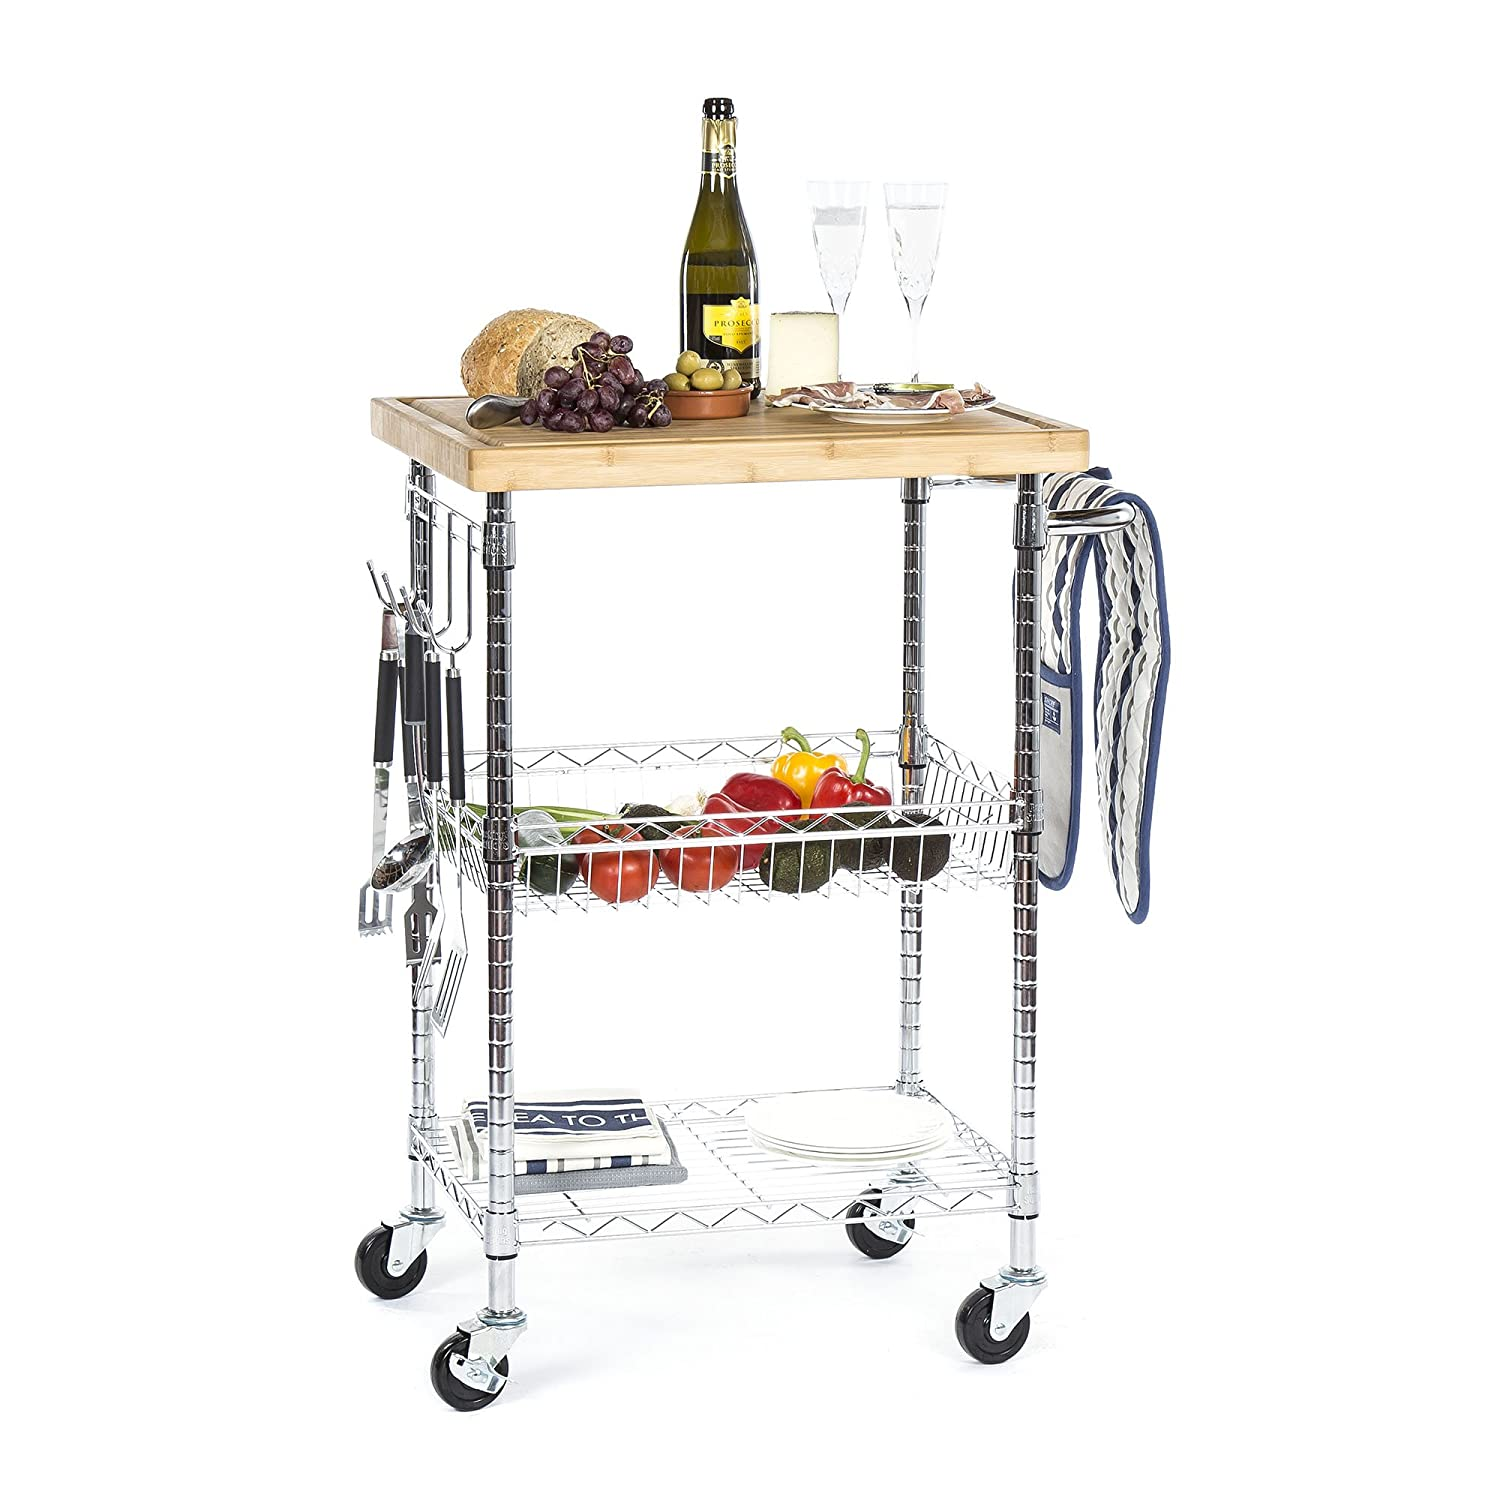 Lavish Chrome Christmas Drink and Food 3 Tier Trolley Cart, with Removable 38mm Bamboo Butchers Block/Chopping Board (933mm H x 710mm W x 500mm D) Free New Day Delivery Racking Solutions